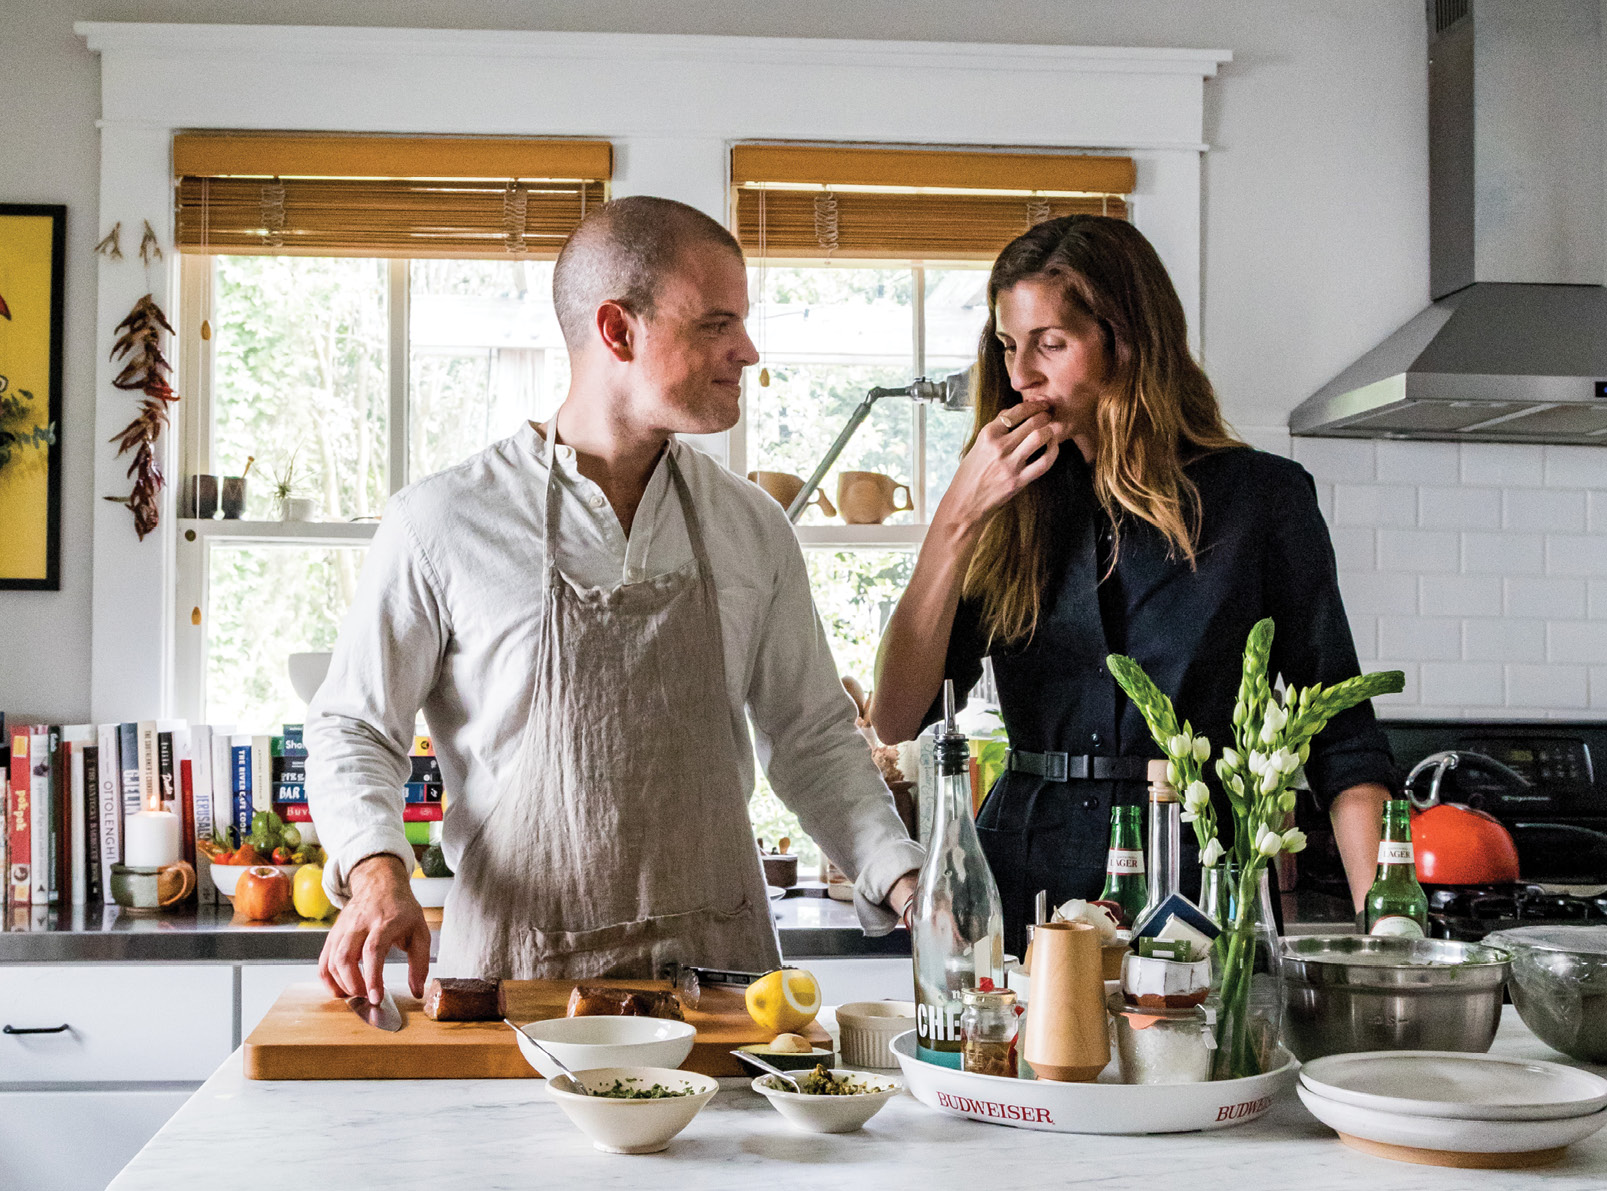 Restaurateur Brooks Reitz and his wife, Erin, prep a vibrant autumn meal in their North Central home.